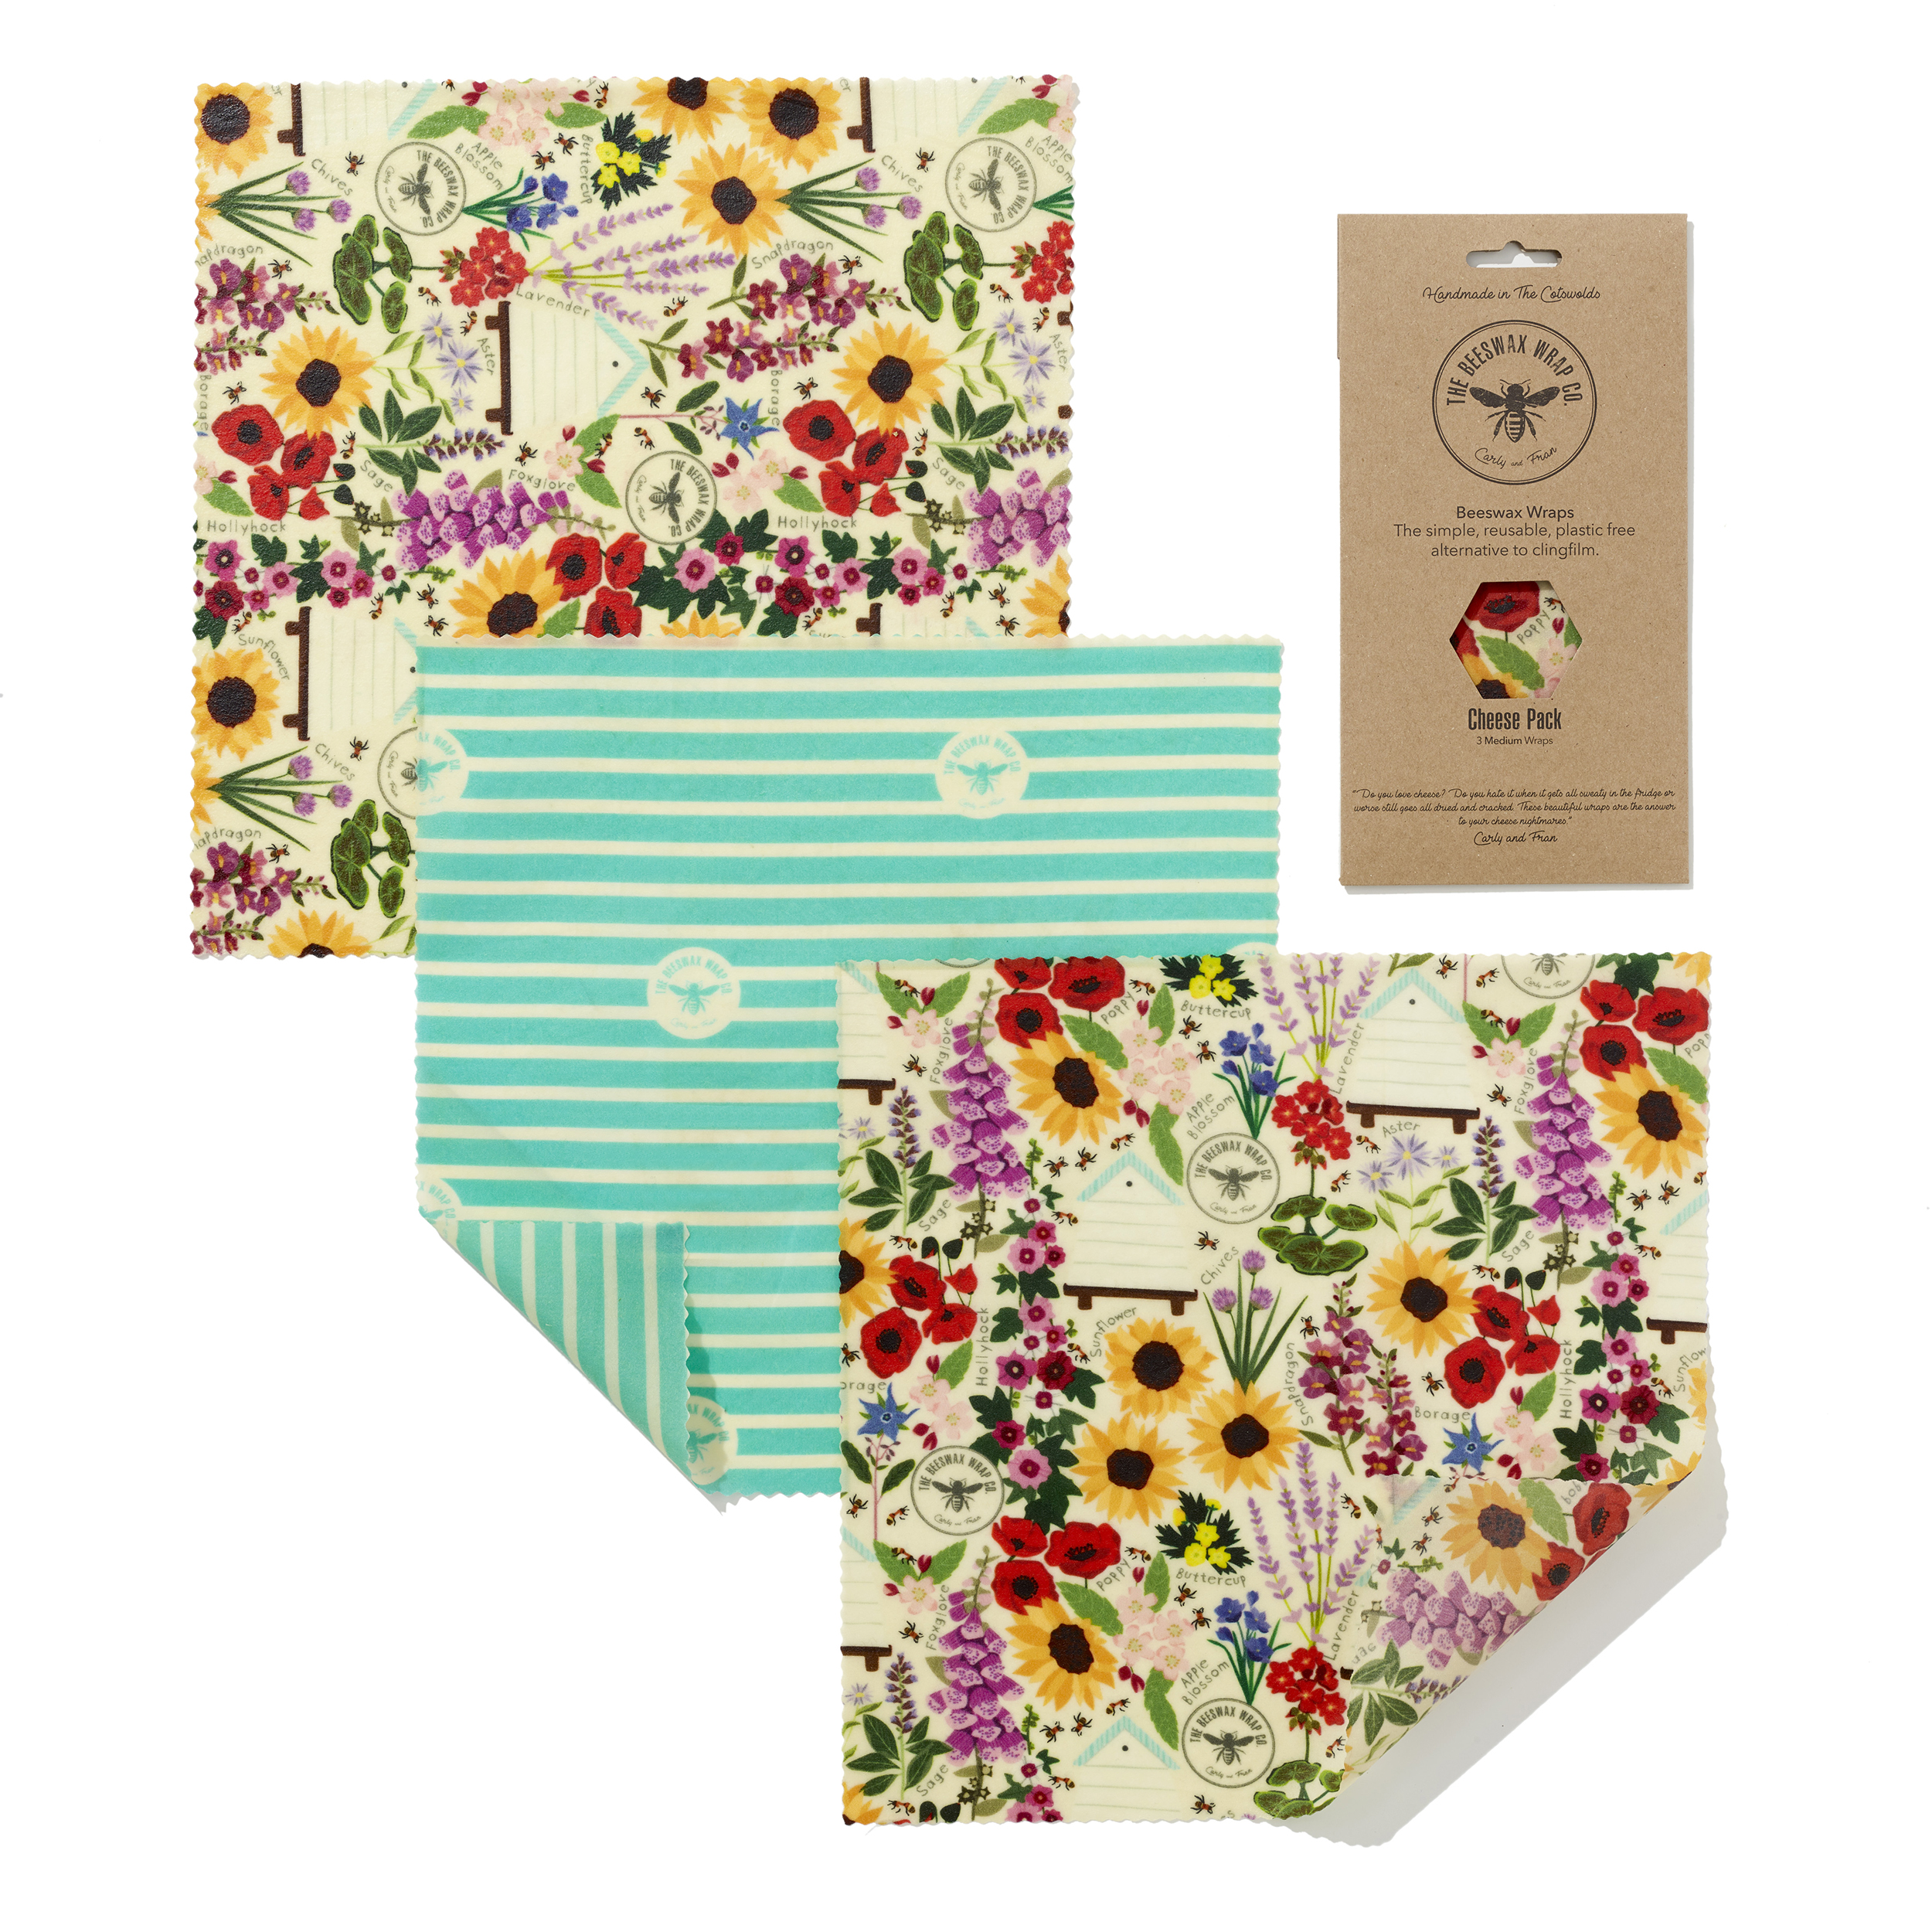 Cheese Pack - 3 Mediums — Beeswax Wraps - Plastic Free Living | The Beeswax  Wraps Co